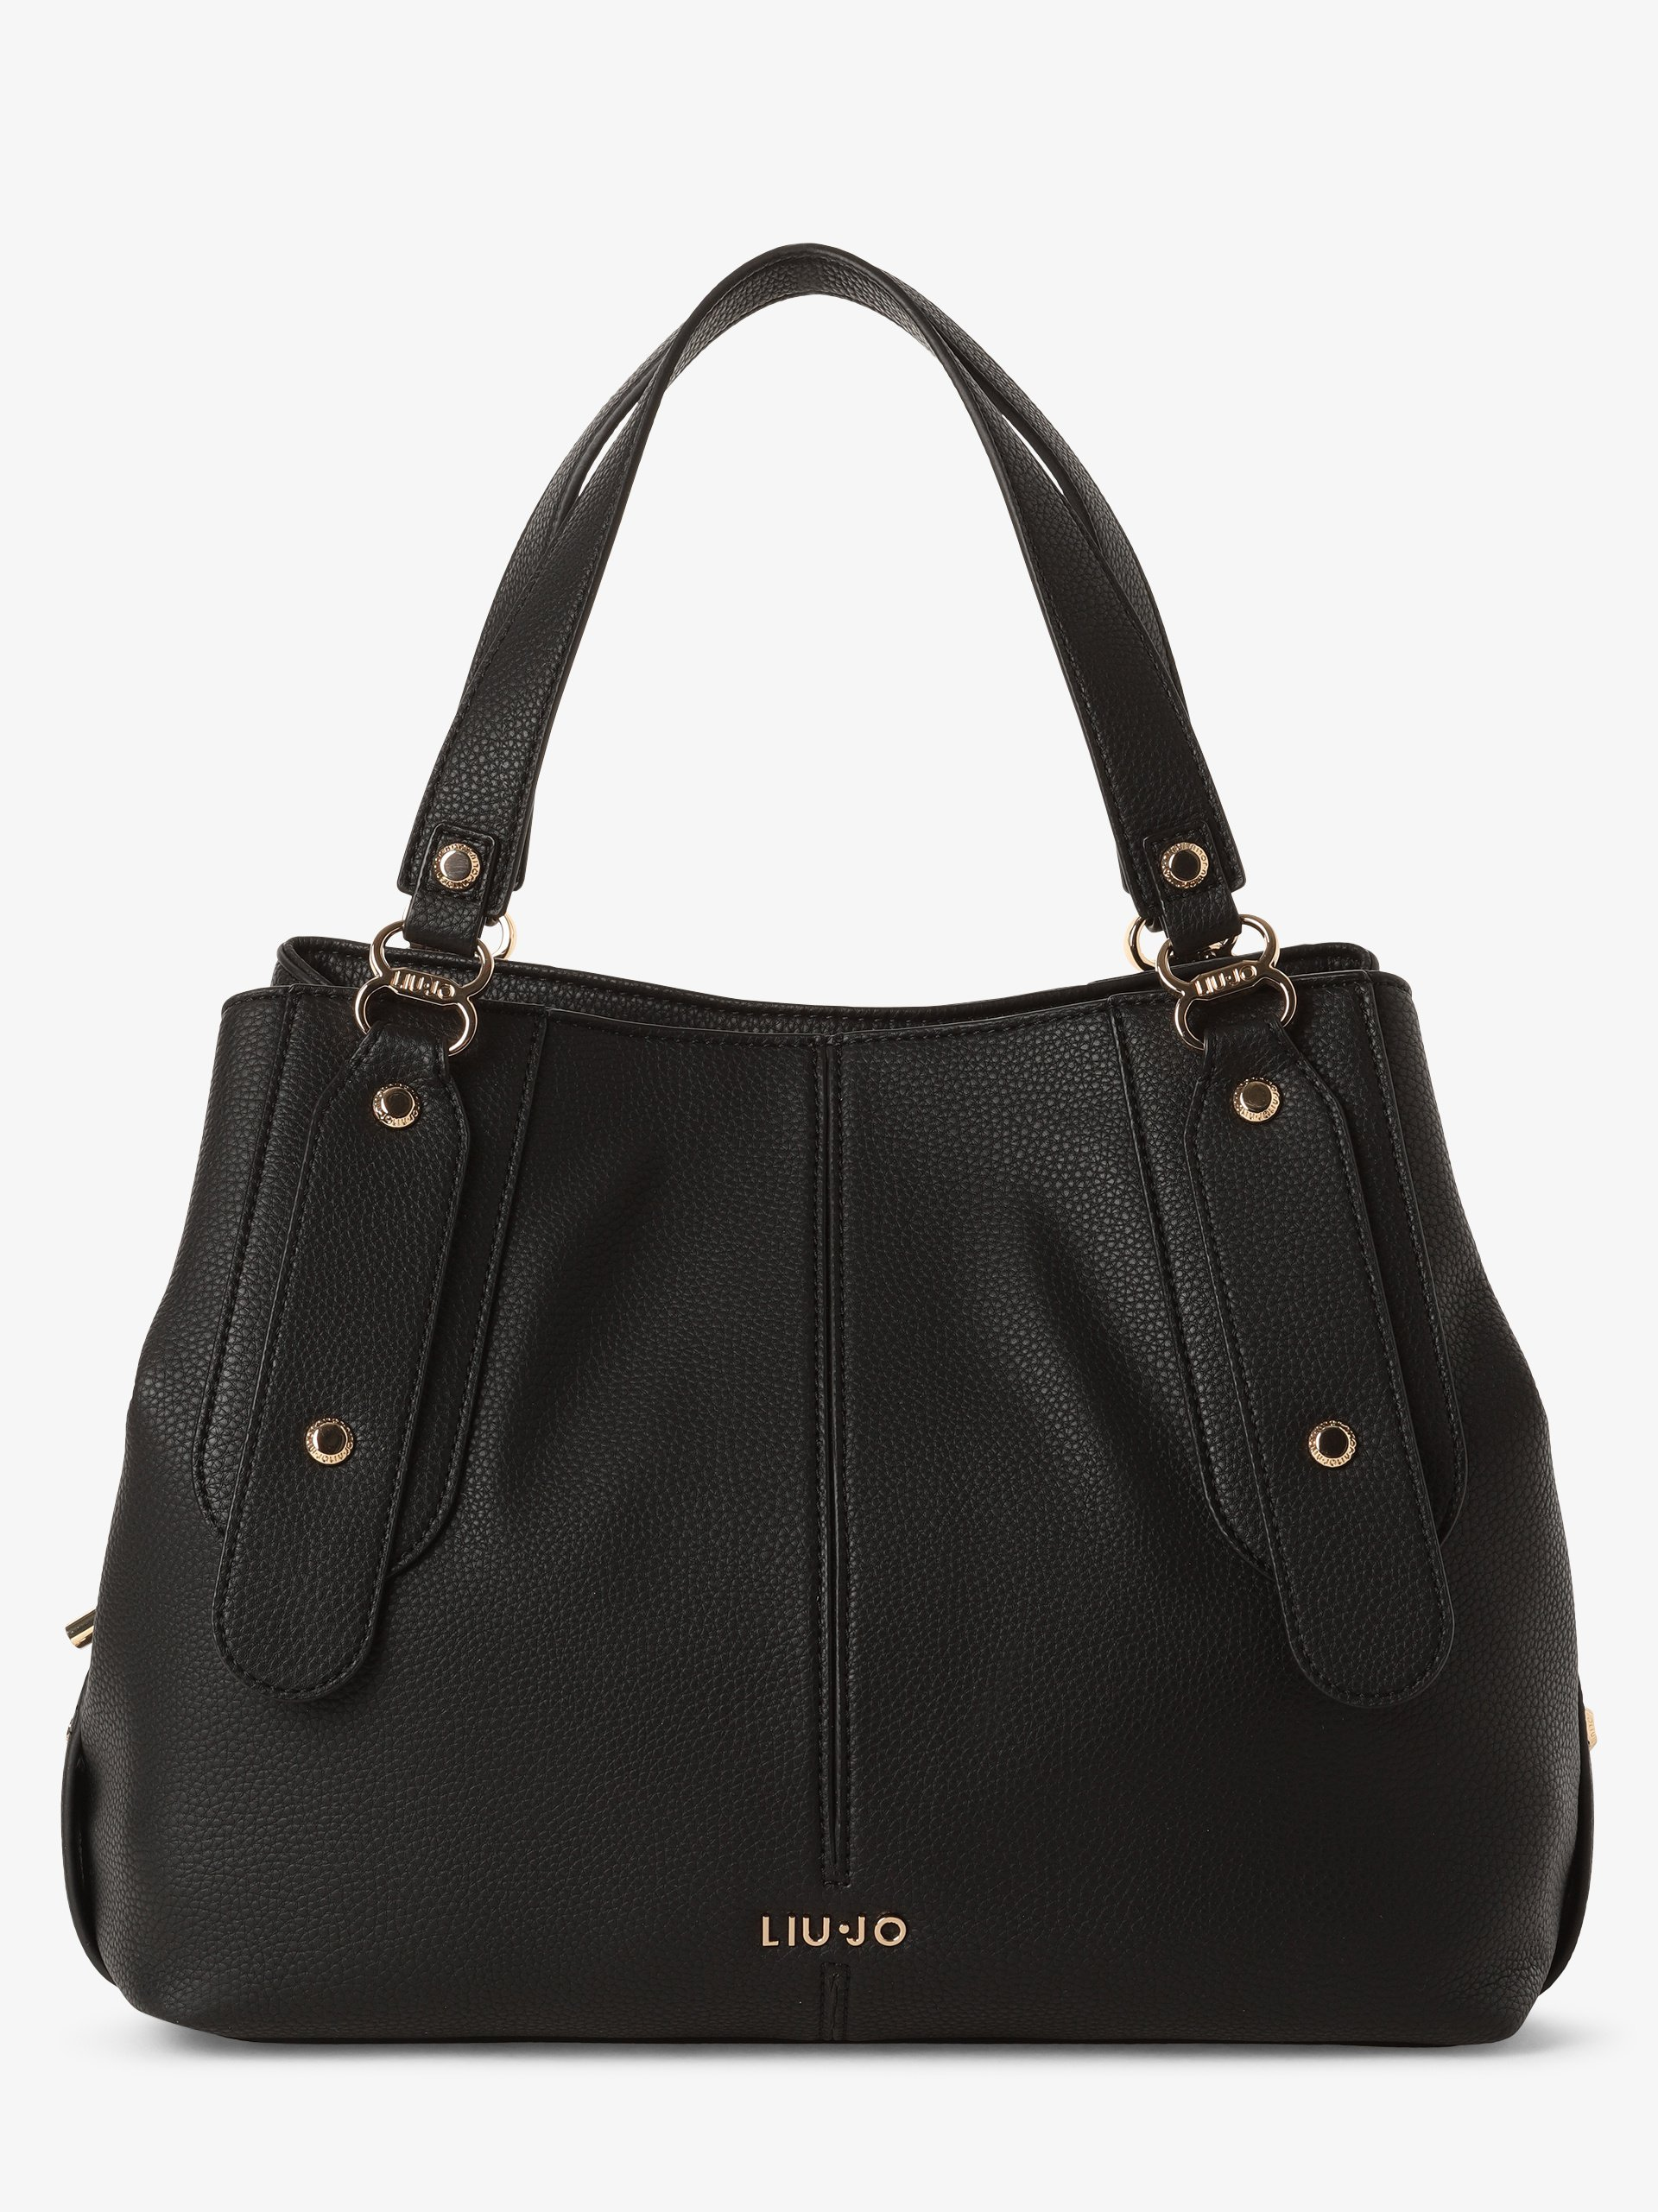 Liu Jo Collection Damska torba shopper